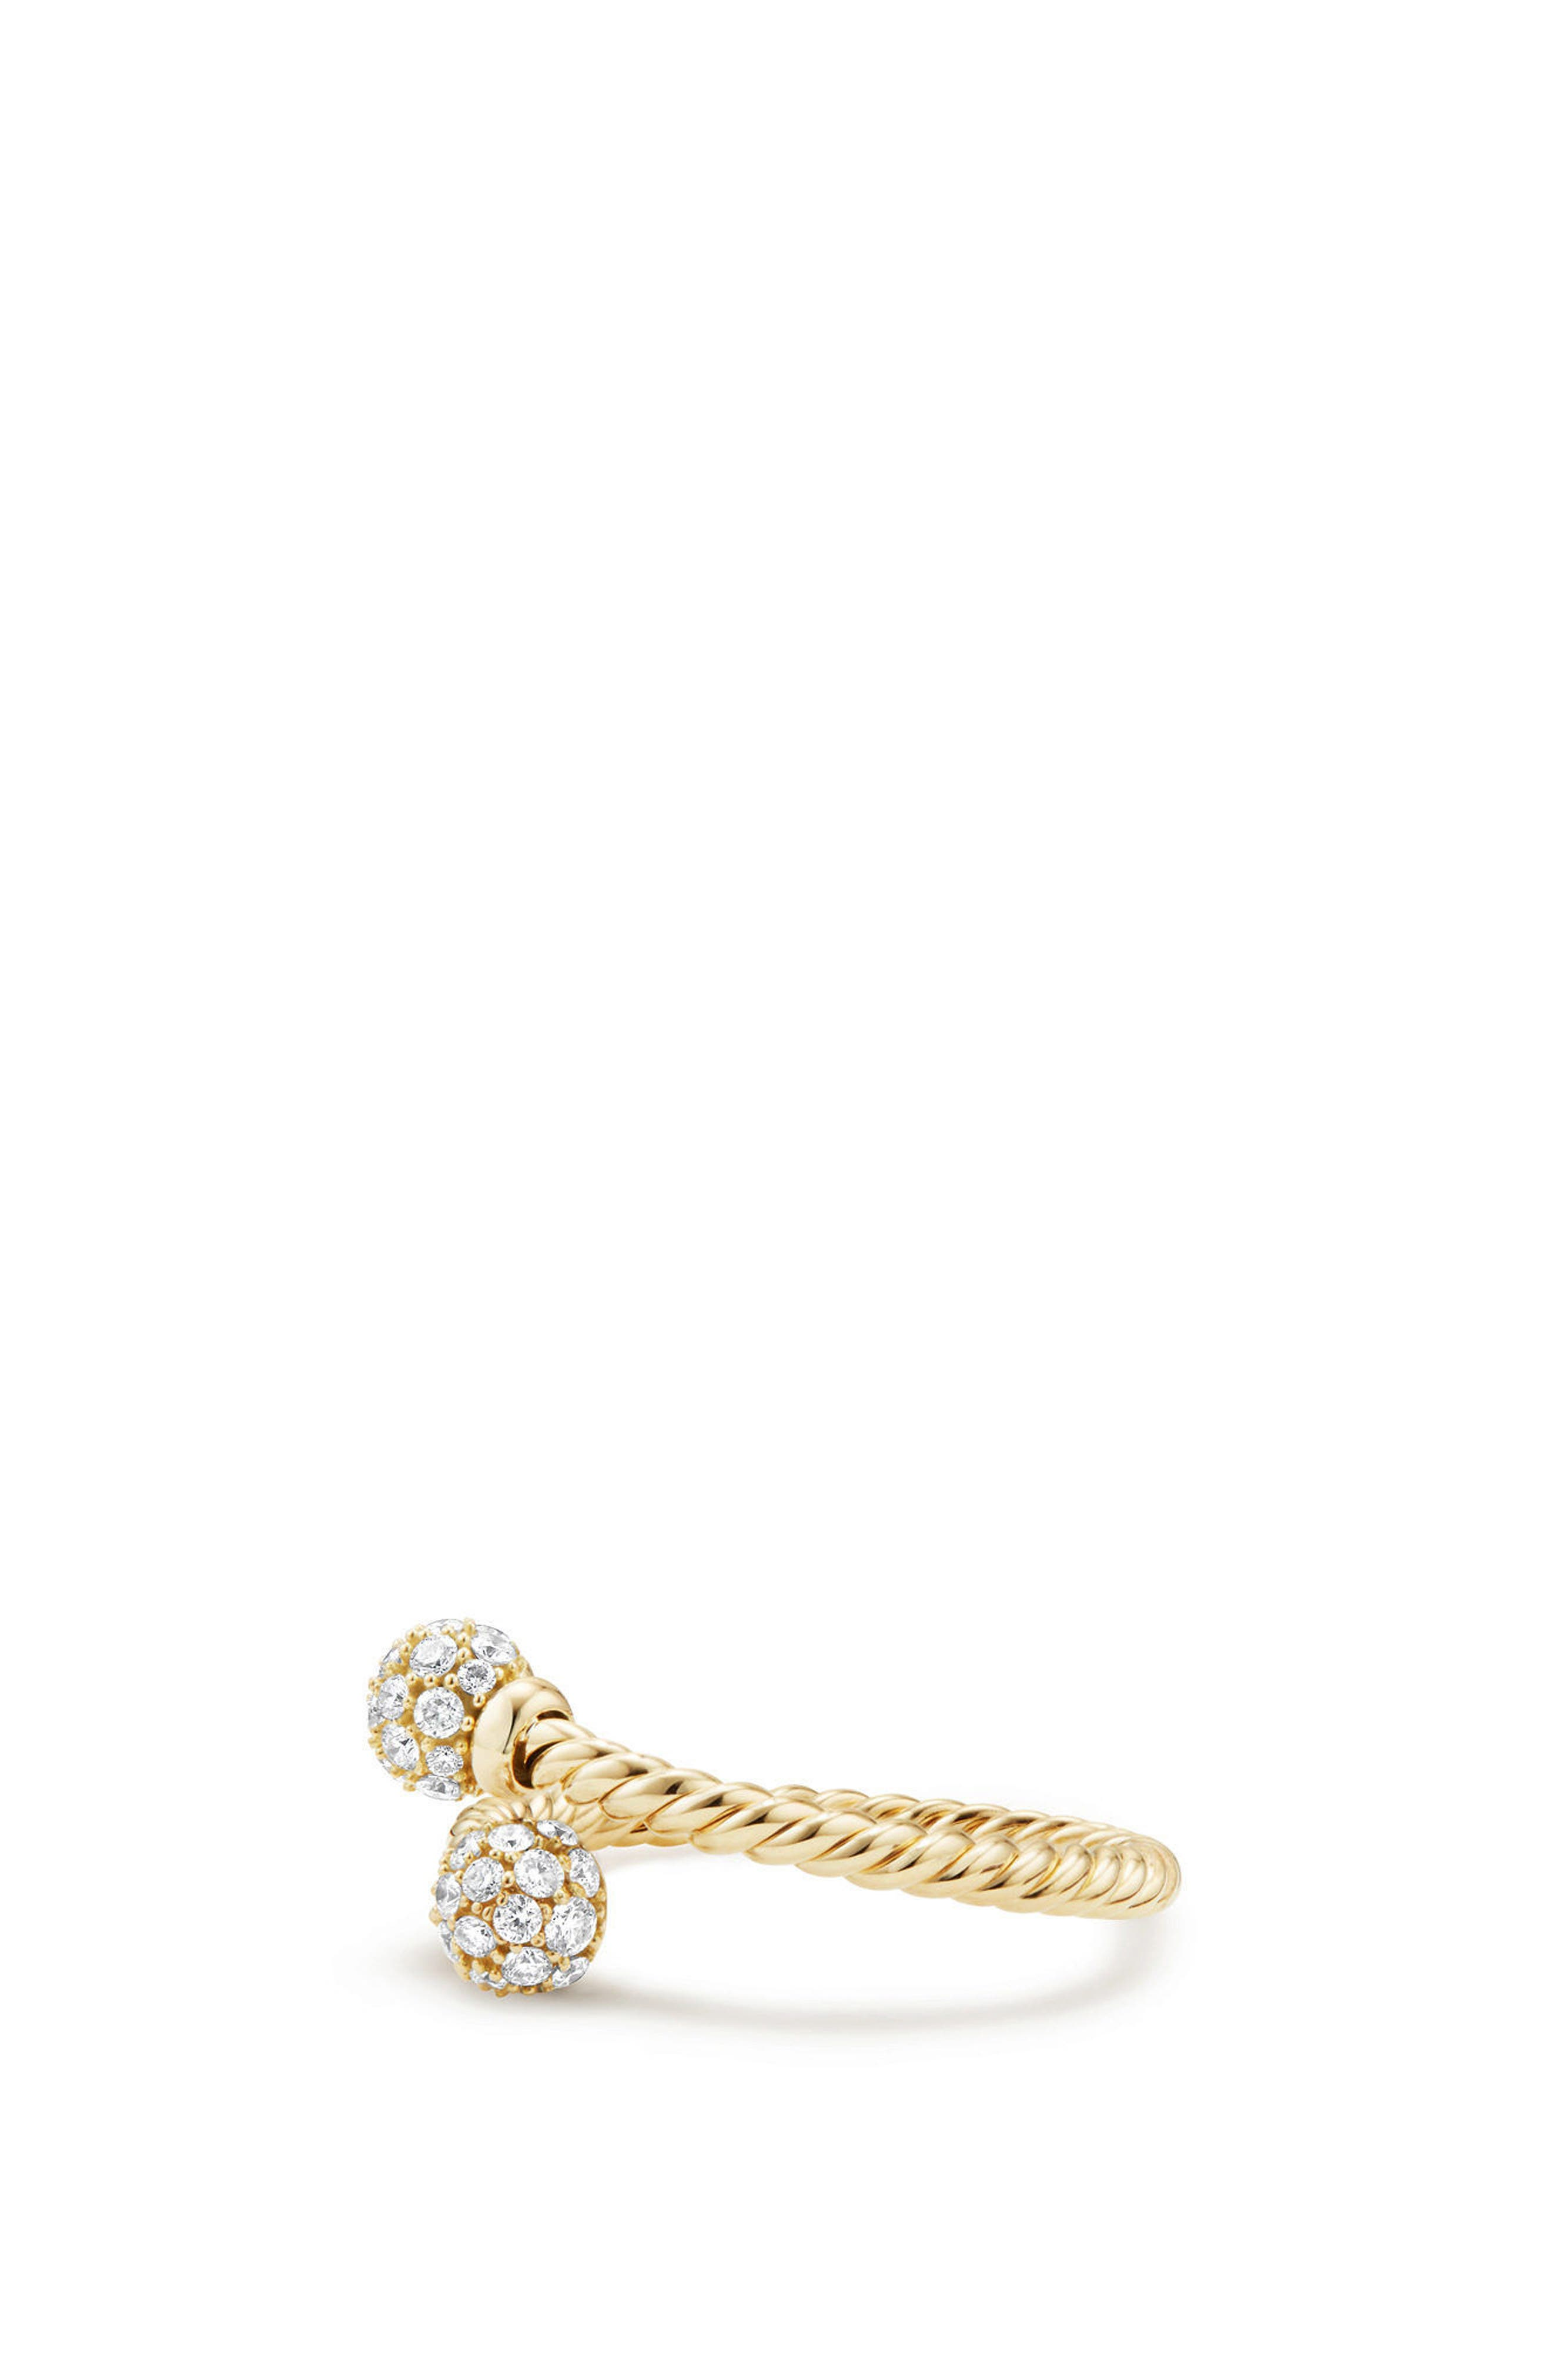 Petite Solari Bypass Ring with Diamonds in 18K Gold,                             Alternate thumbnail 2, color,                             YELLOW GOLD/ DIAMOND